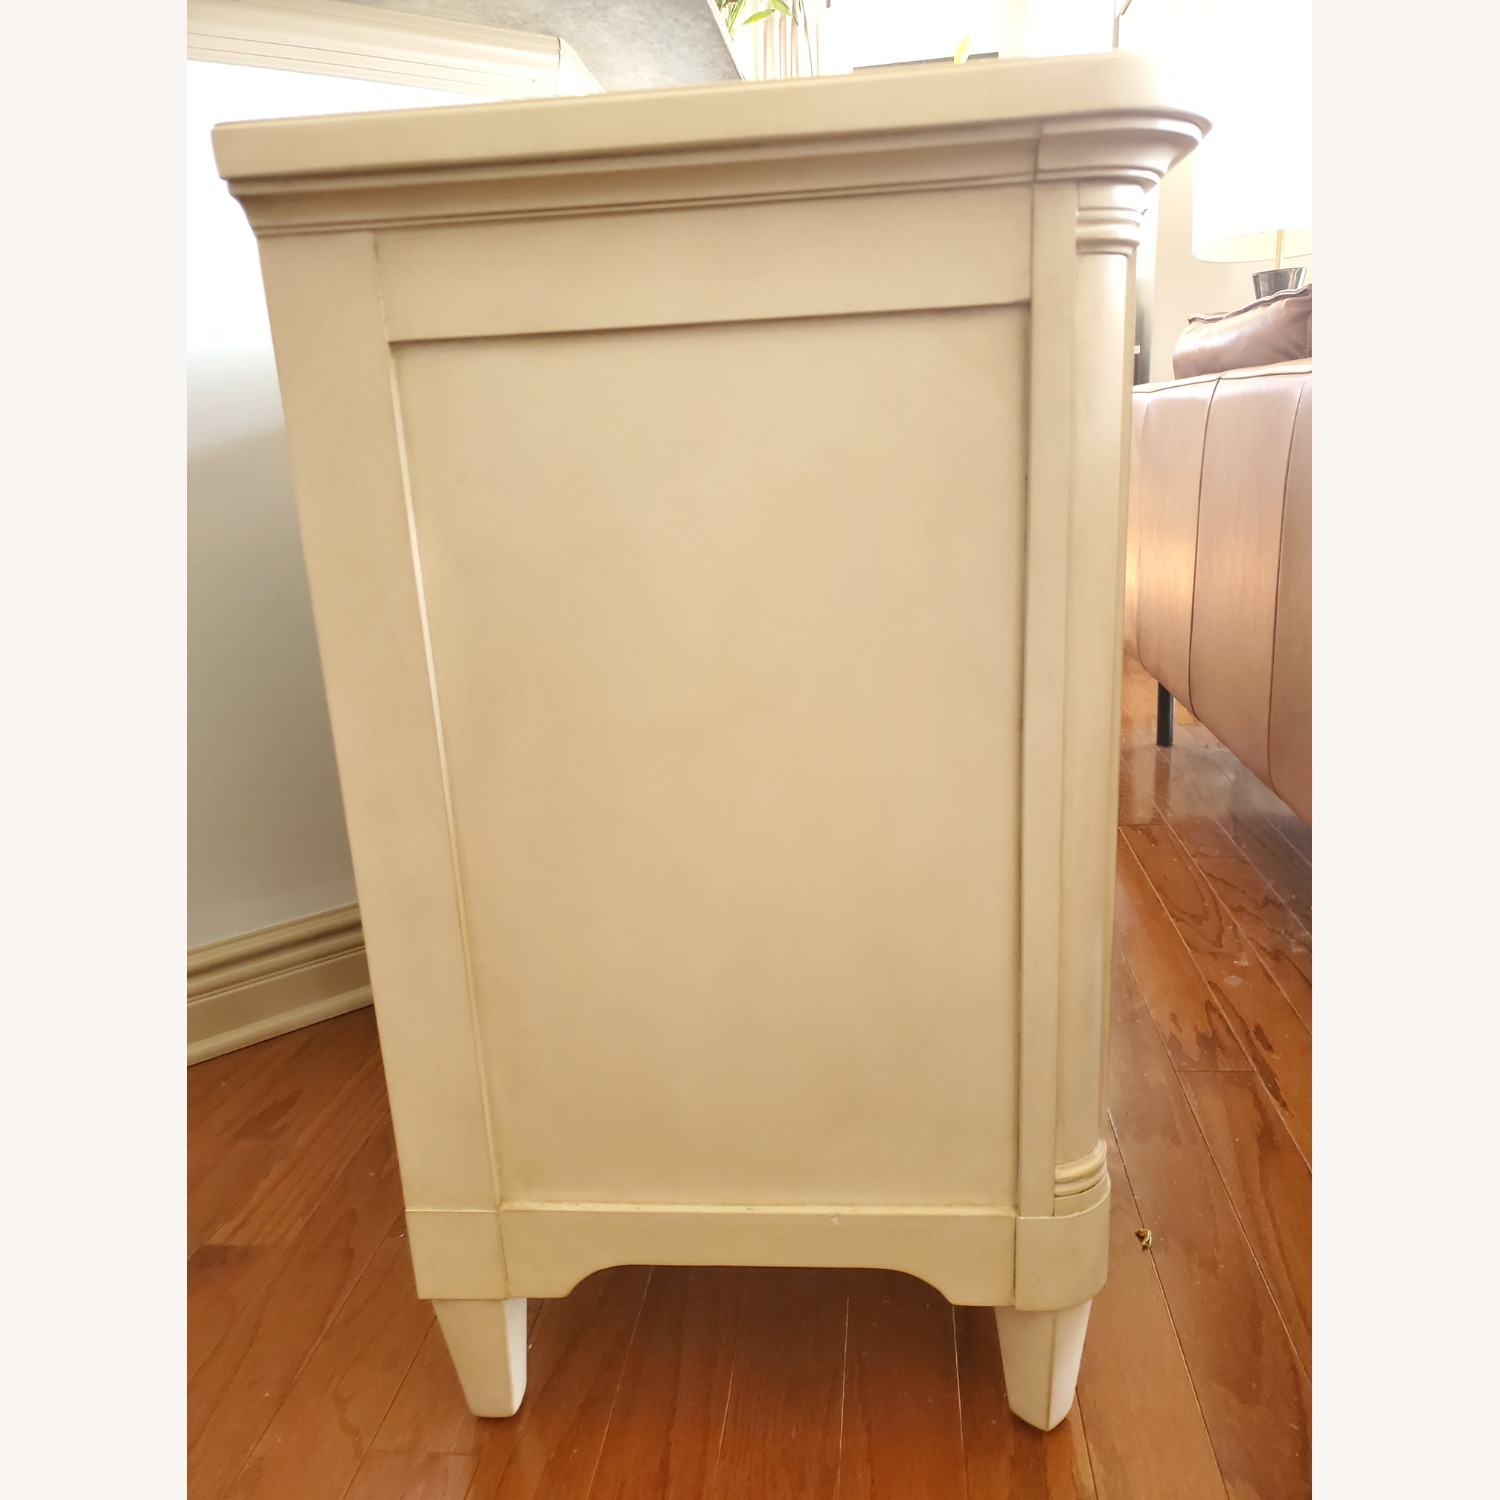 Stanley Sommerset Ivory 3 Drawer Nightstands - image-2